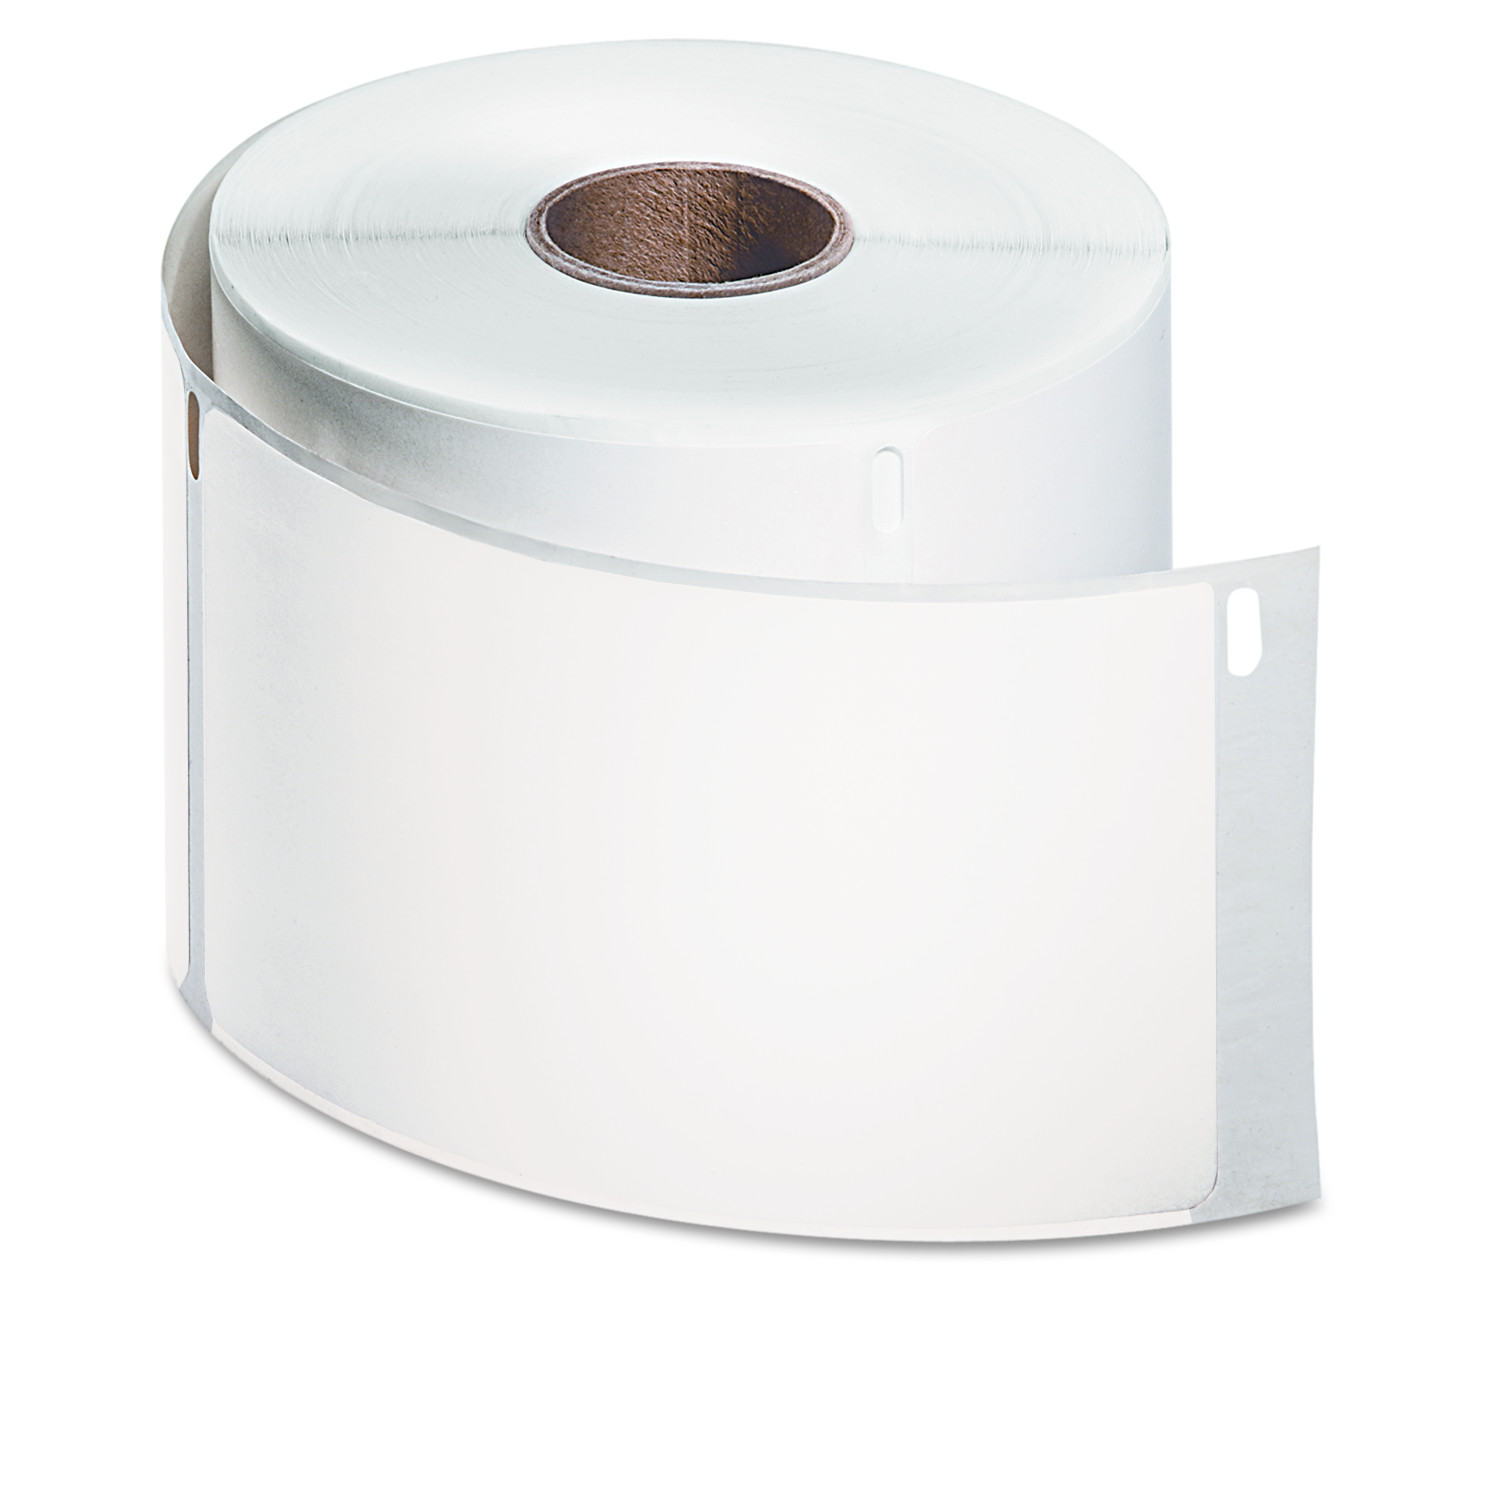 DYMO LabelWriter Shipping Labels, 2 5/16 x 4, White, 250 Labels/Roll